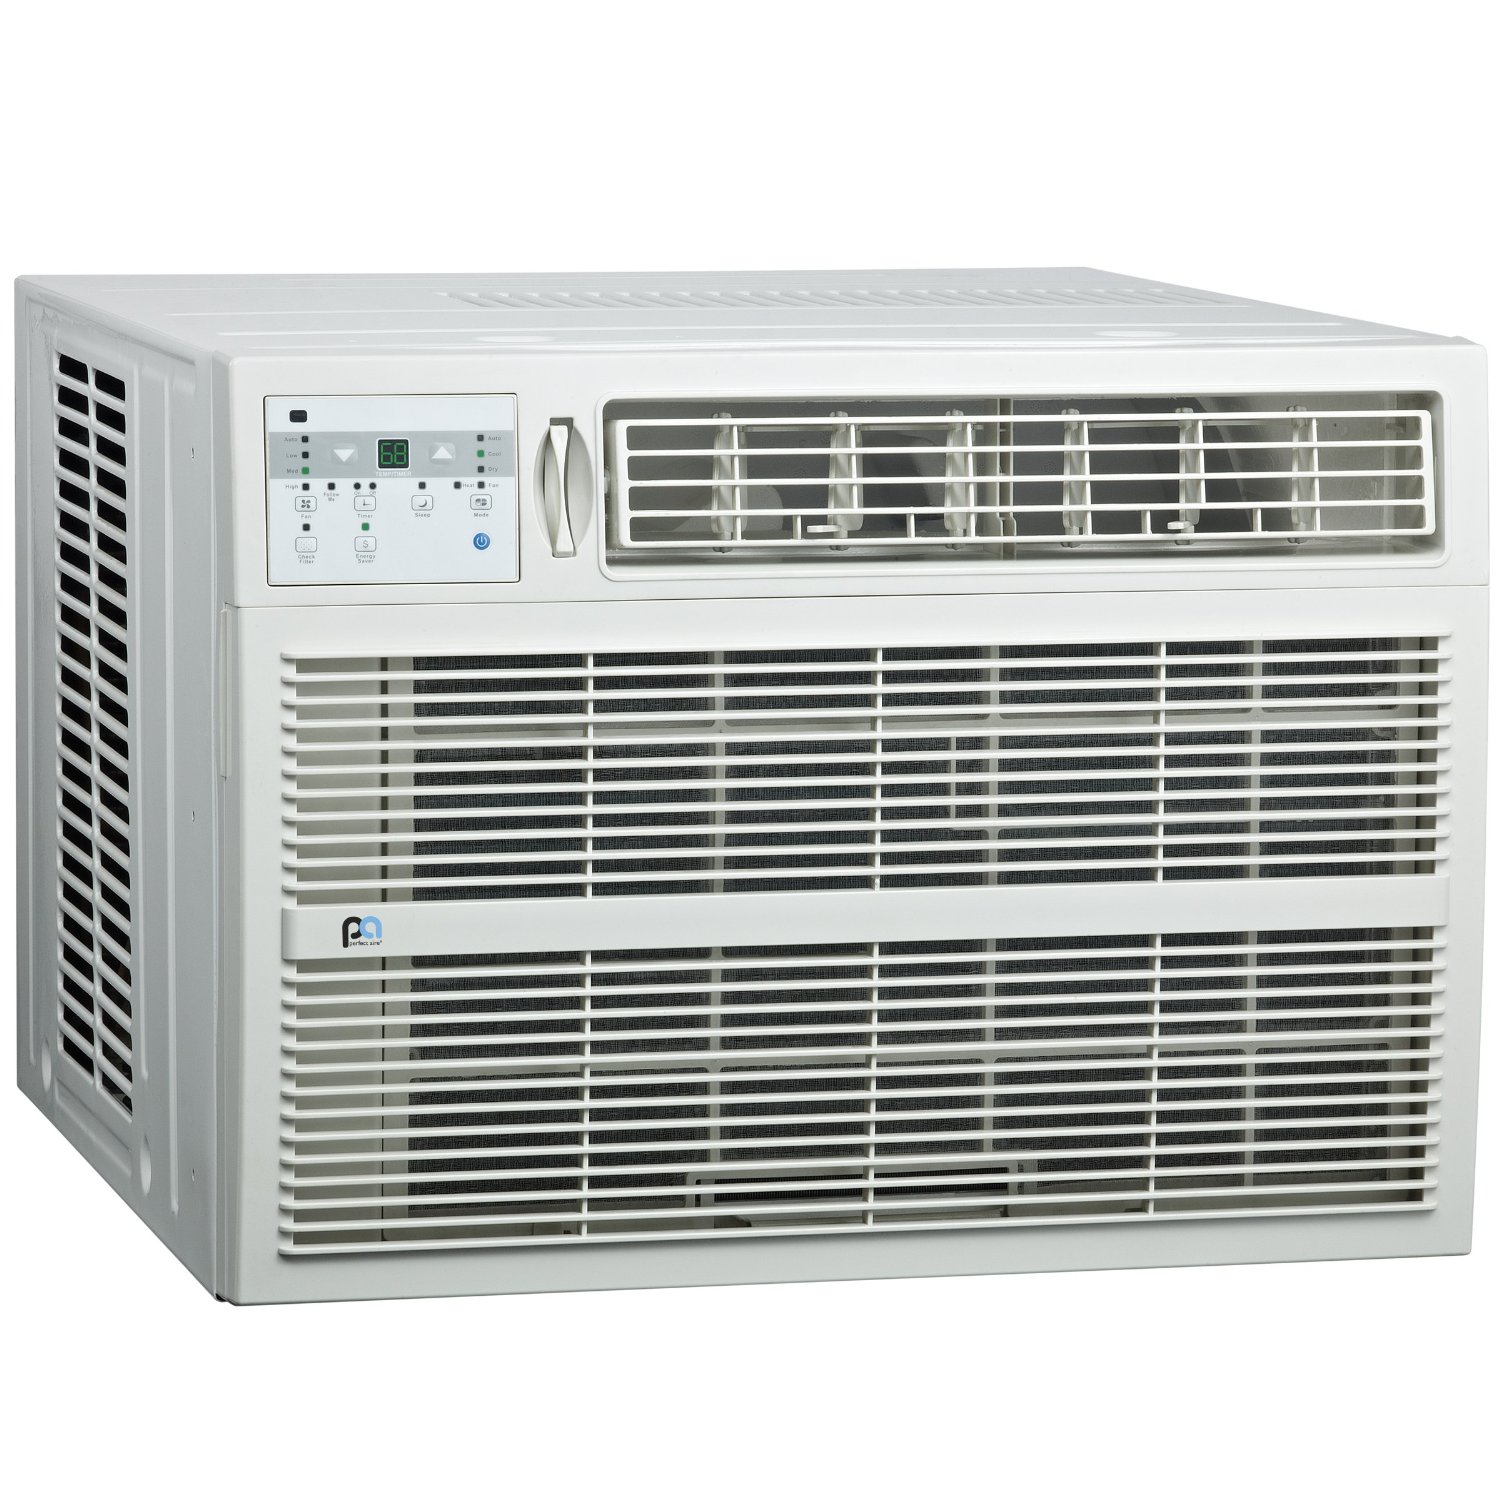 What is the best 15000 btu air conditioner? built in wall speakers